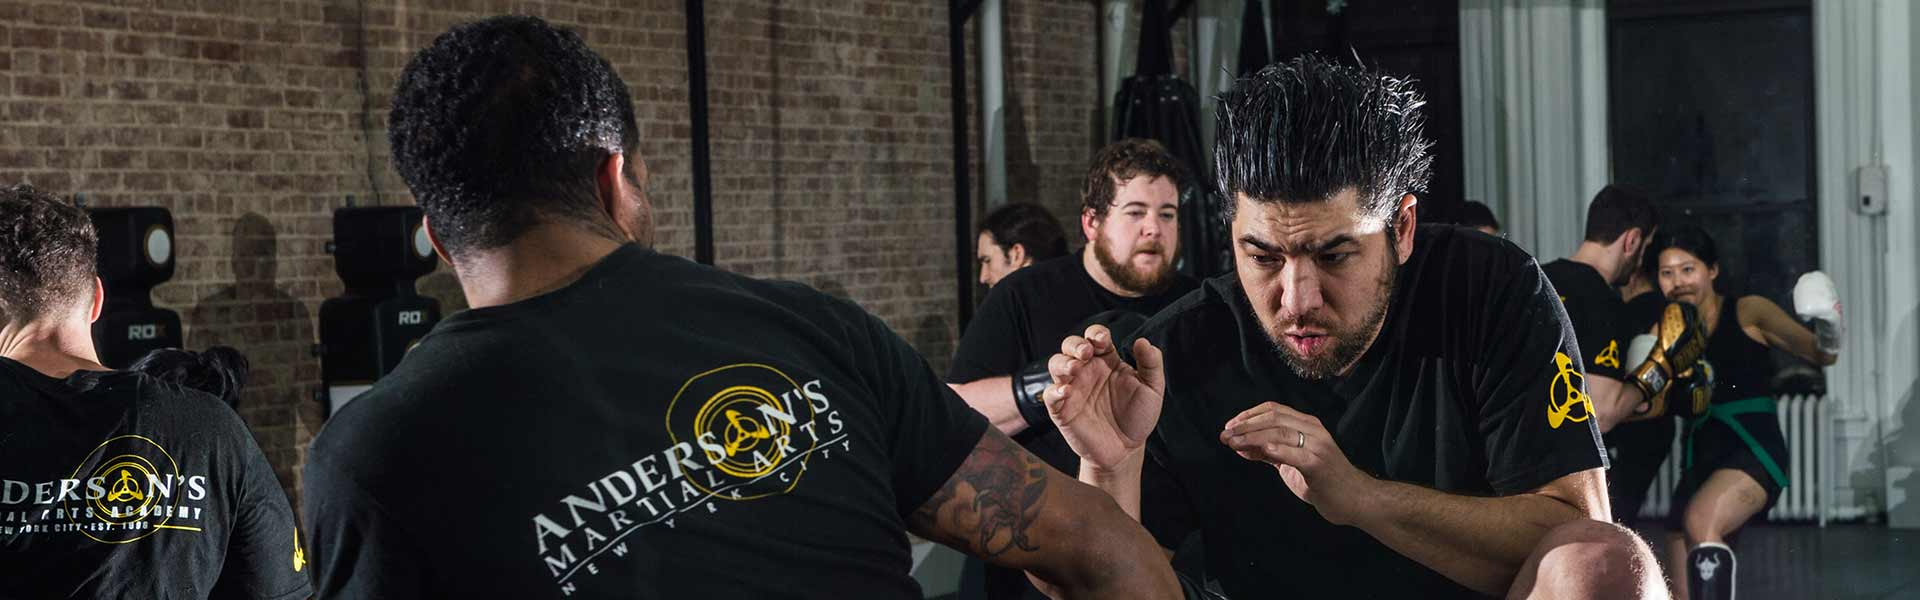 Silat Training at Andersons Martial Arts Academy New York City